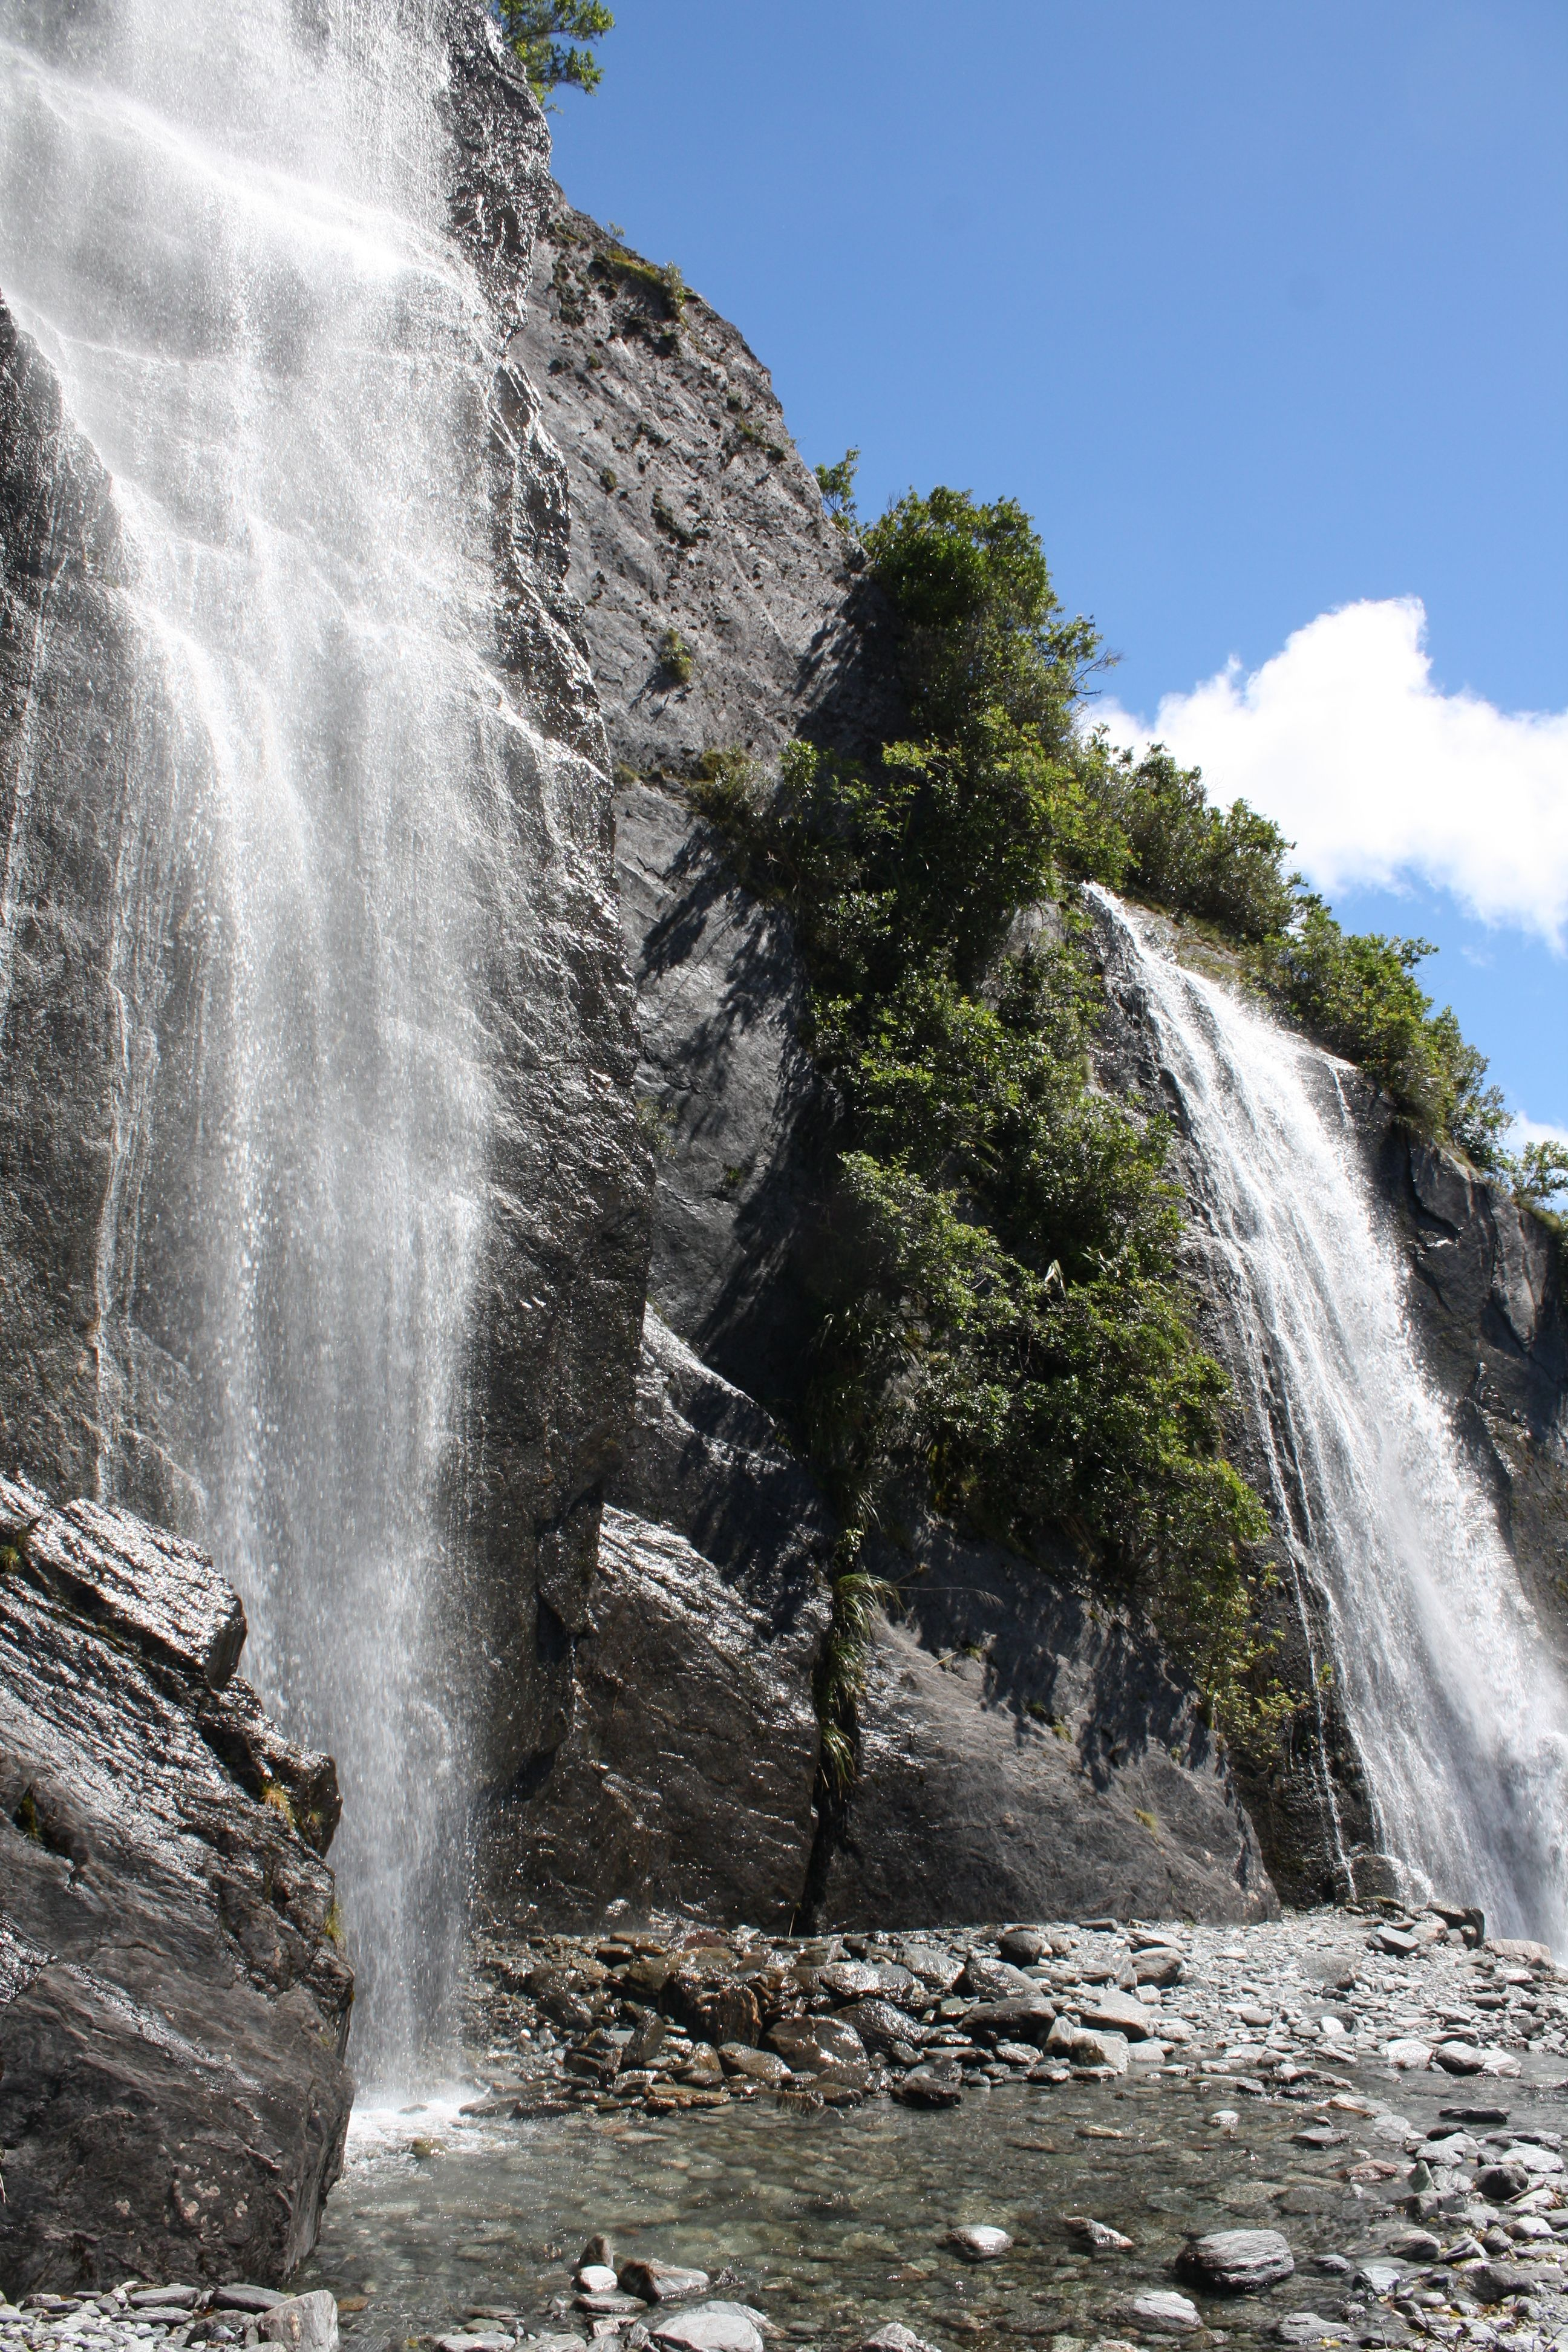 Waterfall Falling Frans Josef Glacier Nz With Images